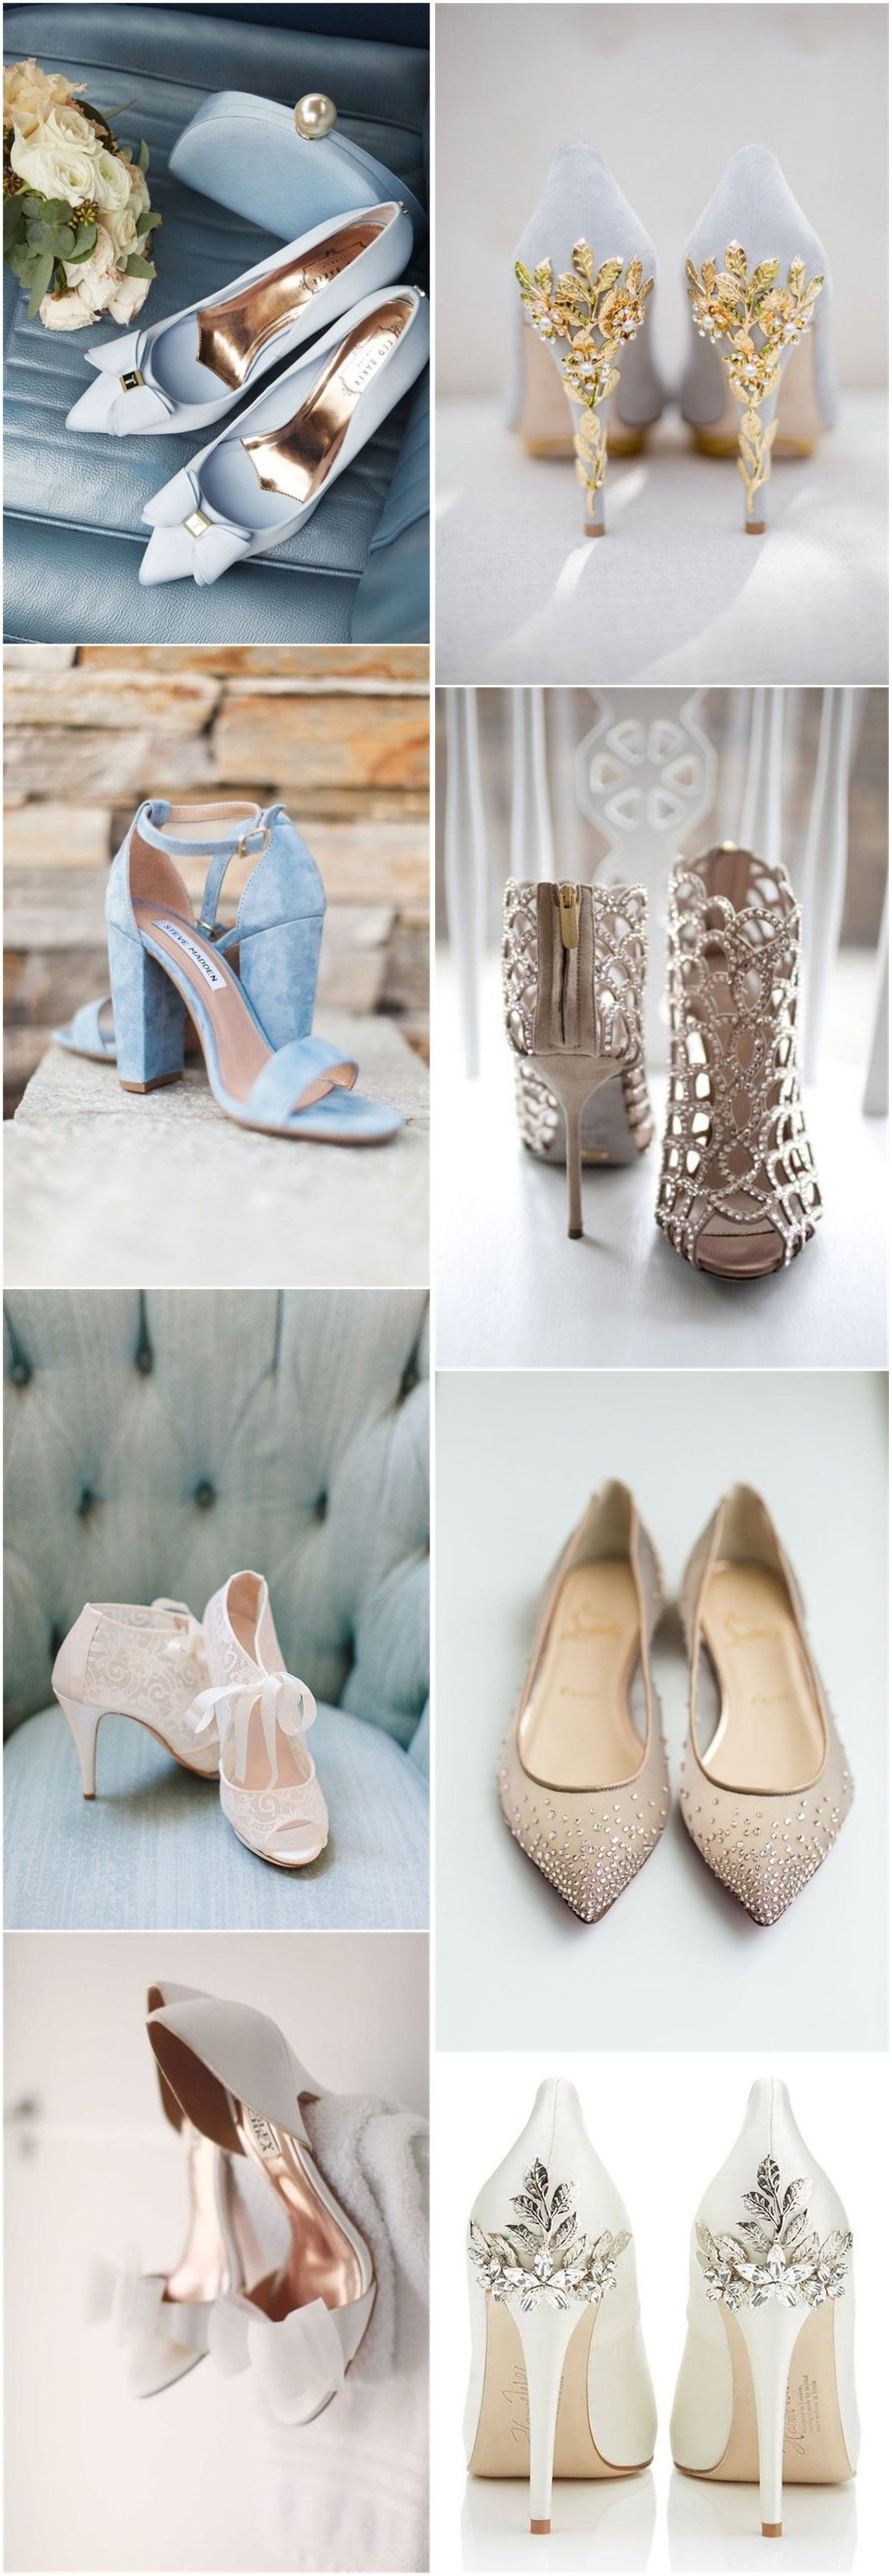 day one to a shoes plan photography blush for comfortable bride part how wedding of comforter timeline inspirational